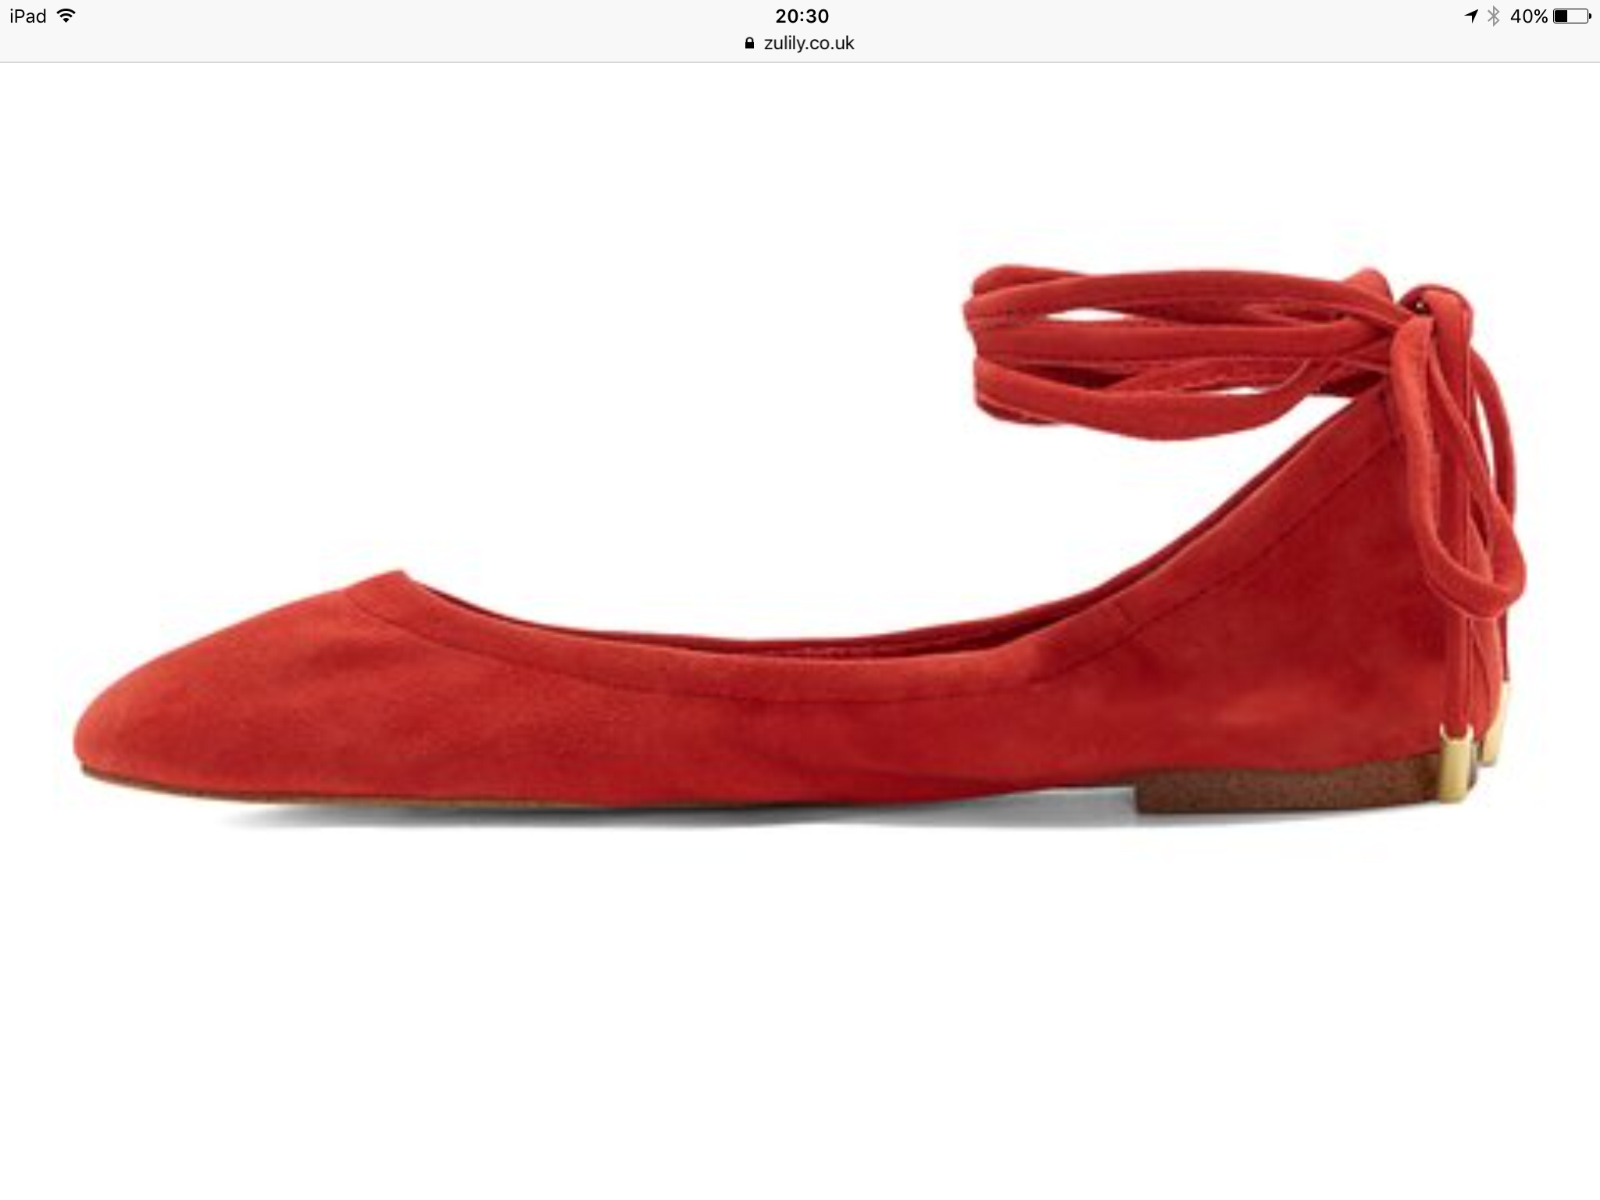 Lot 2 - 1.State By Vince Camuto Persimmon Skylaar Suede Flat, Size Uk 4.5 Us 6.5 (New With Box) [Ref: